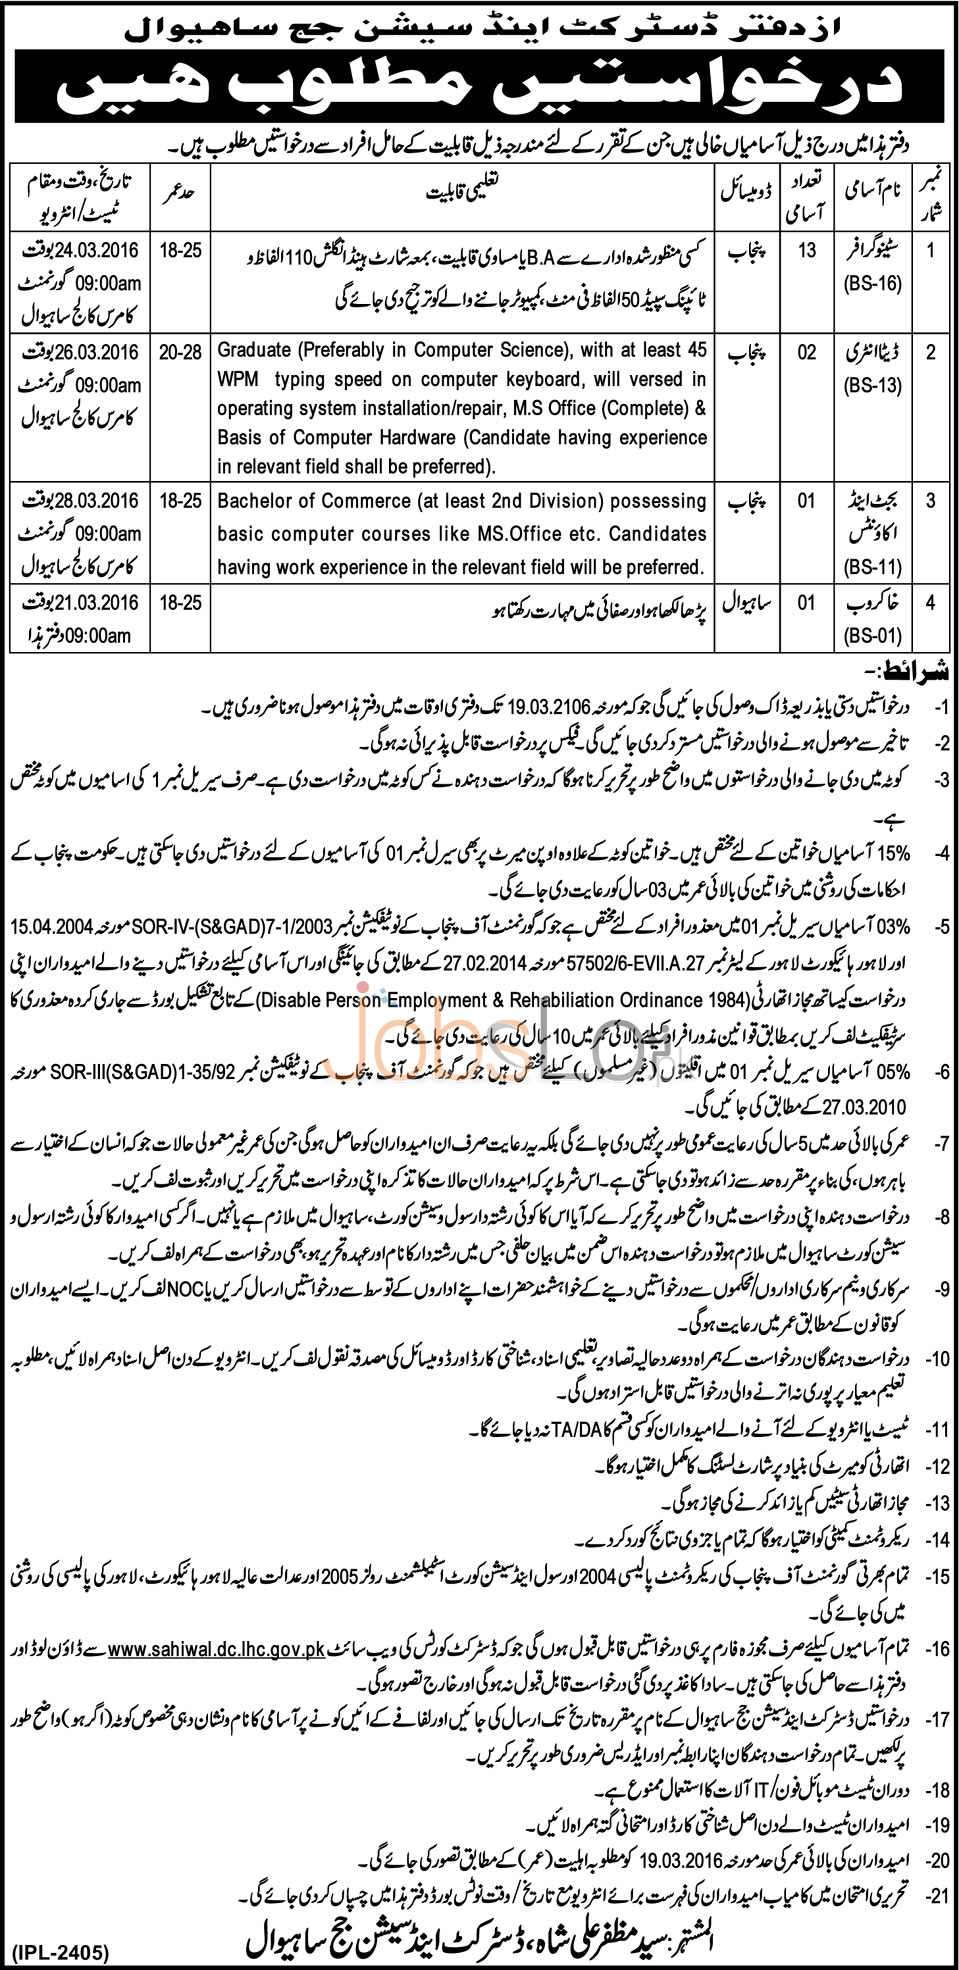 Recruitment Offers in District & Session Court March 2016 Sahiwal Eligibility Criteria Last Date